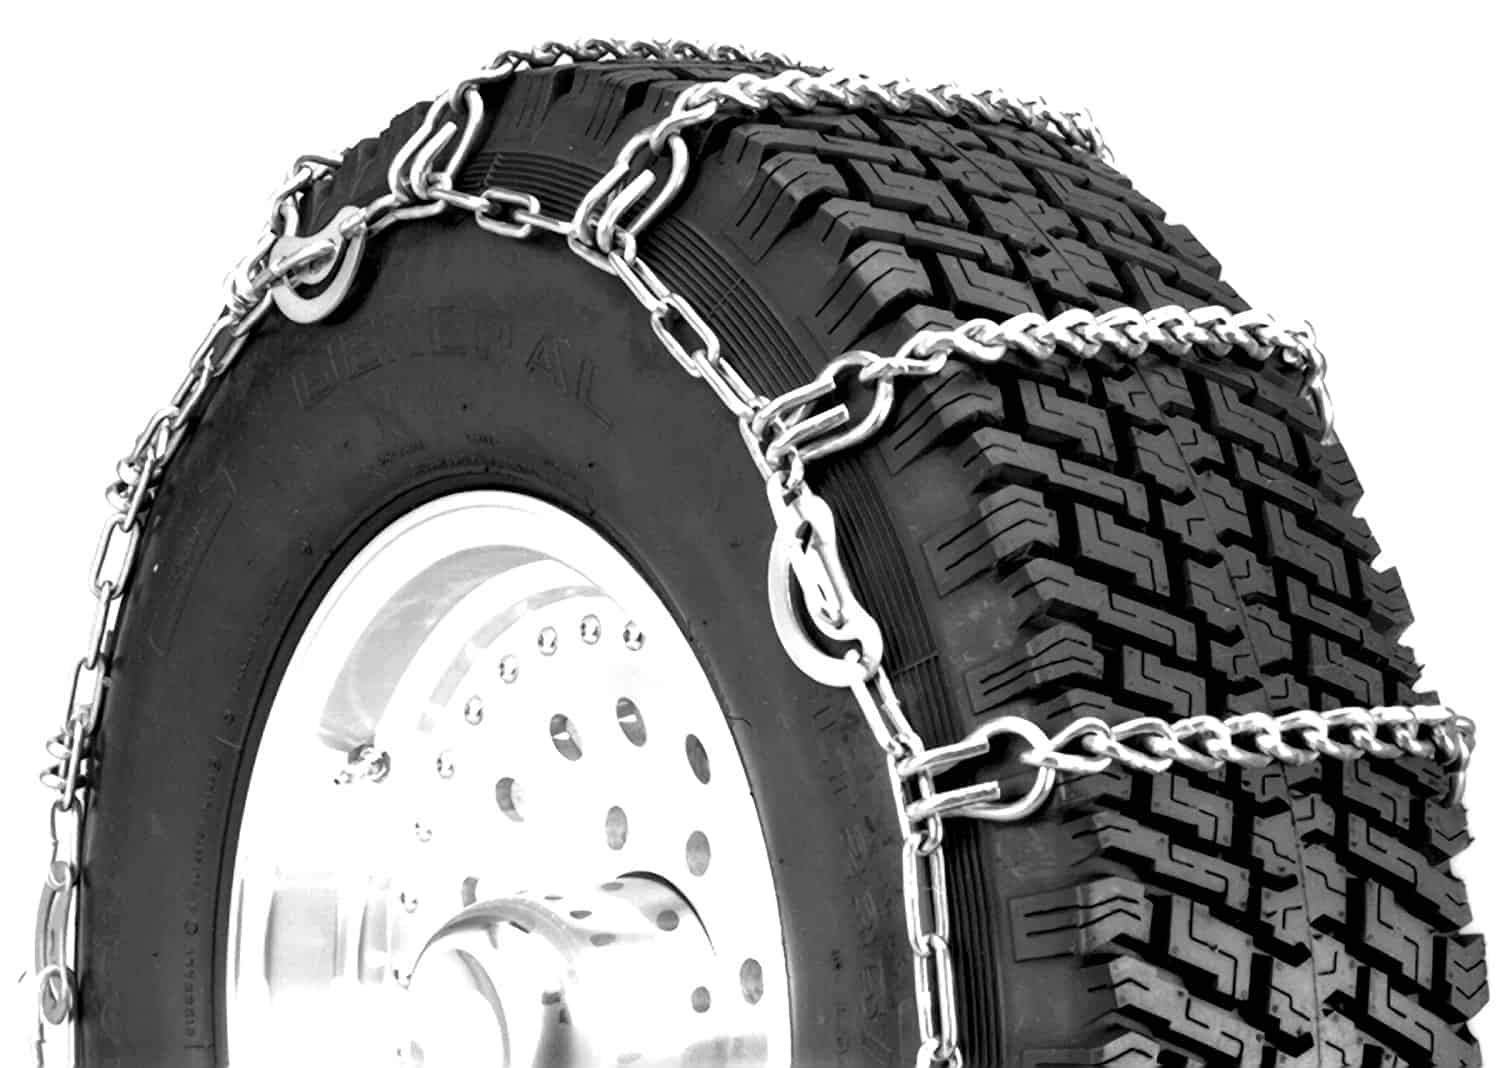 Laclede Chain 7021-535-07 Alpine Premier Passenger Car Tire Chains